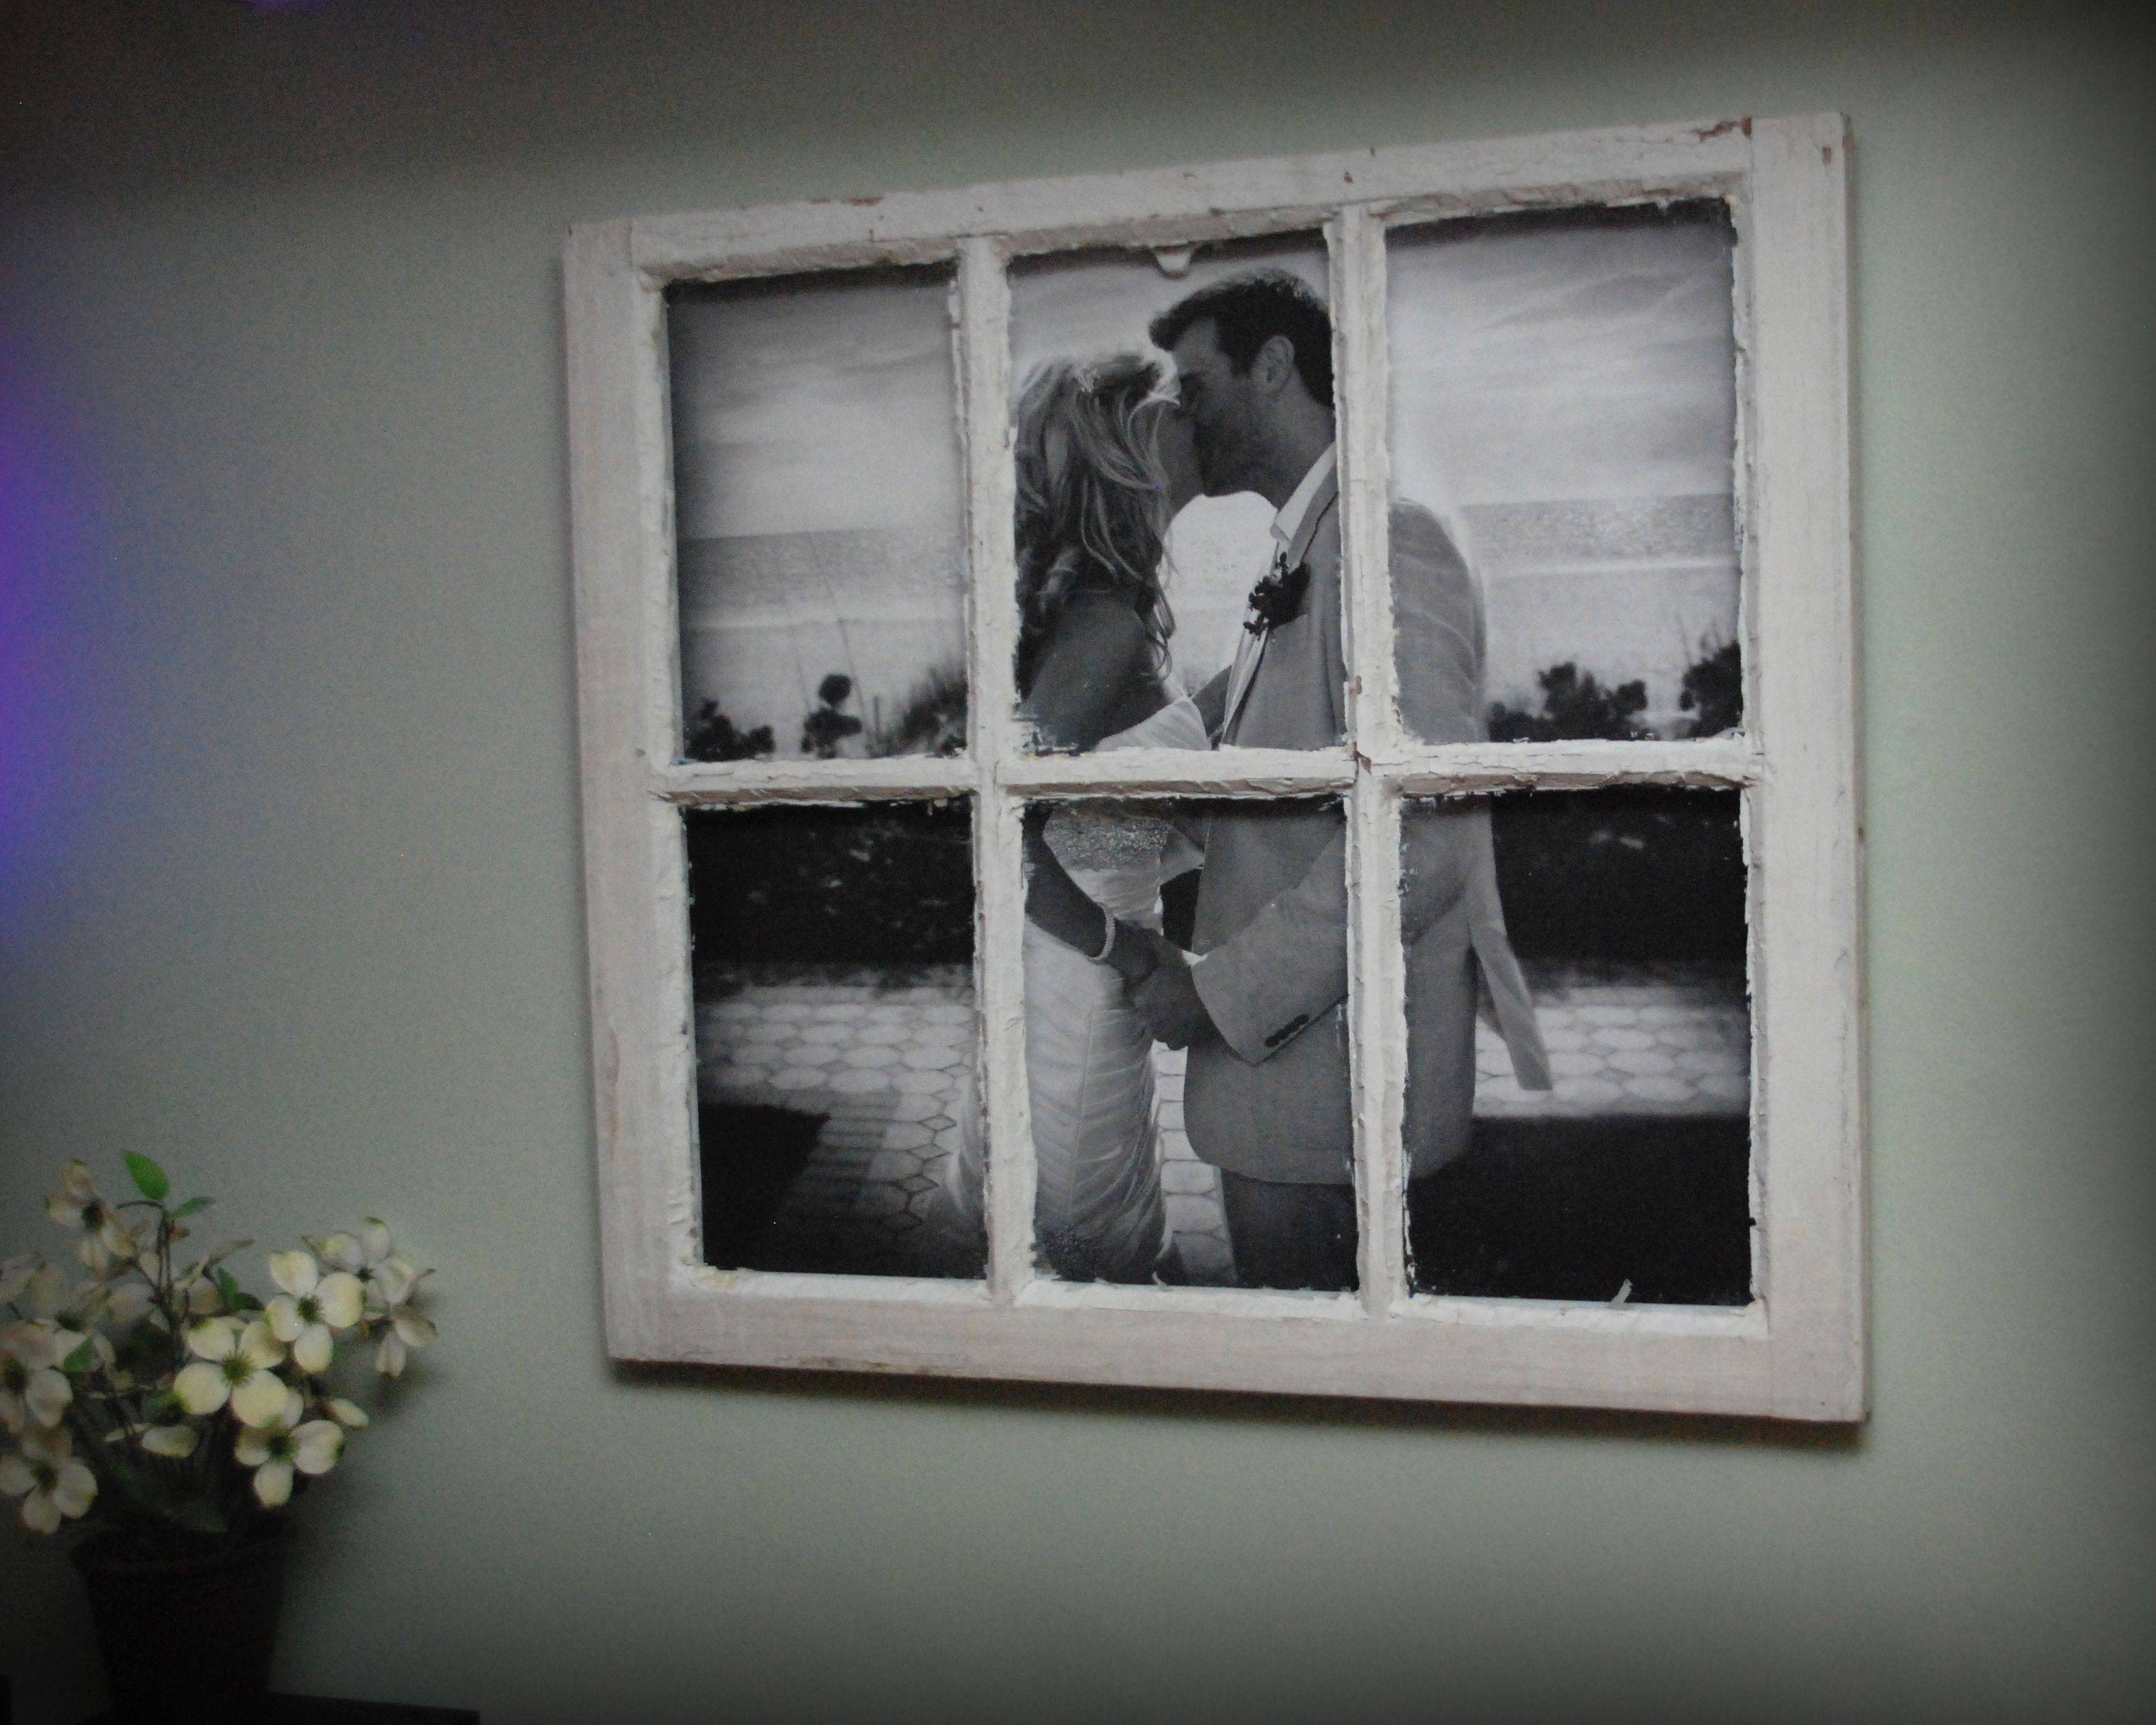 Finished My First Large Photo In An Old Windowpane Old Window Pane Old Windowpane Old Window Panes Large Photos Window Frame Picture